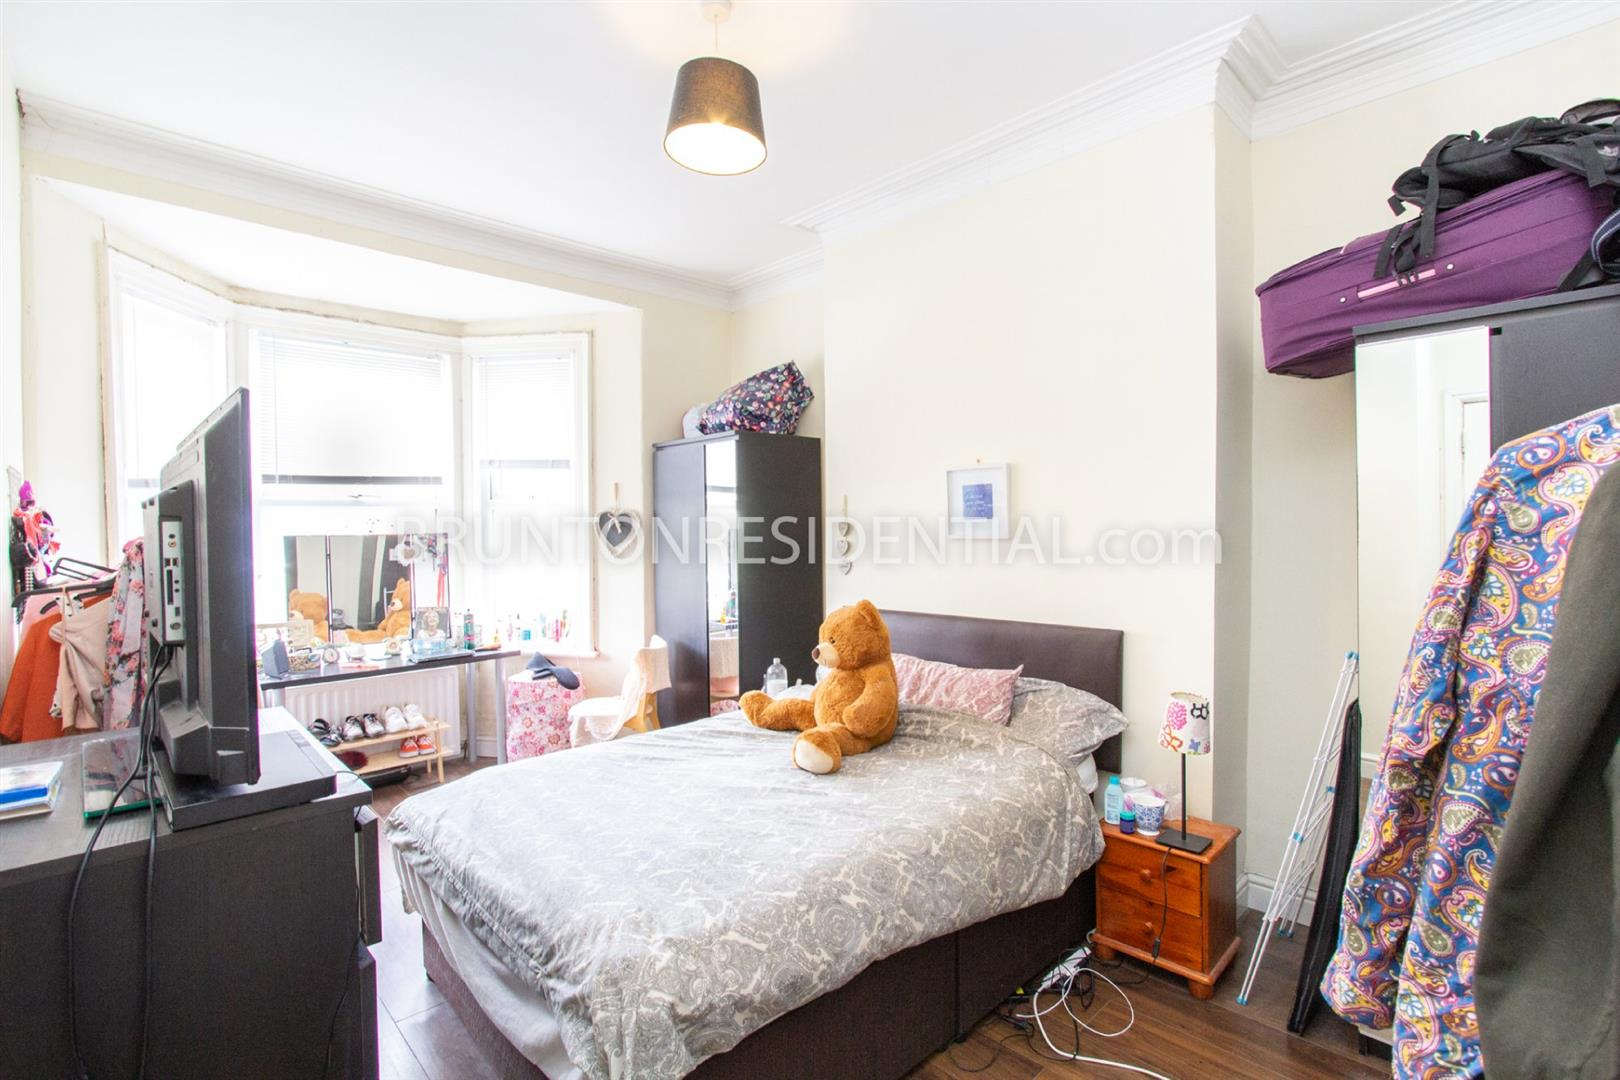 2 bed flat to rent in Newcastle Upon Tyne, NE6 5SP, NE6